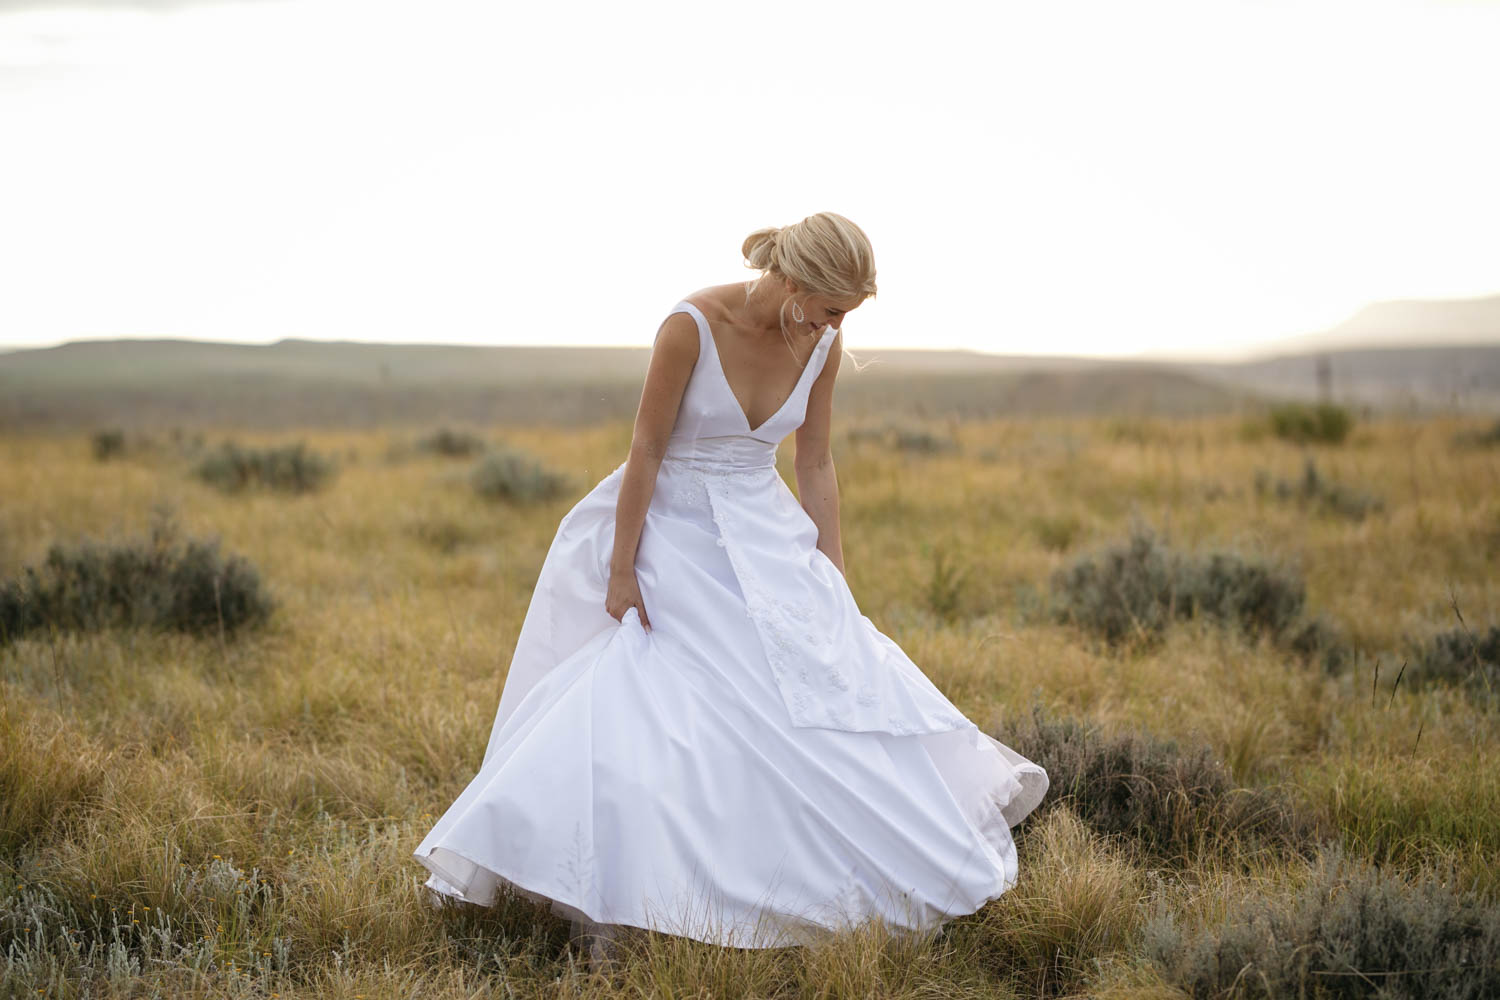 Bride Showing Off Classic White Silk Wedding Dress in Golden Field